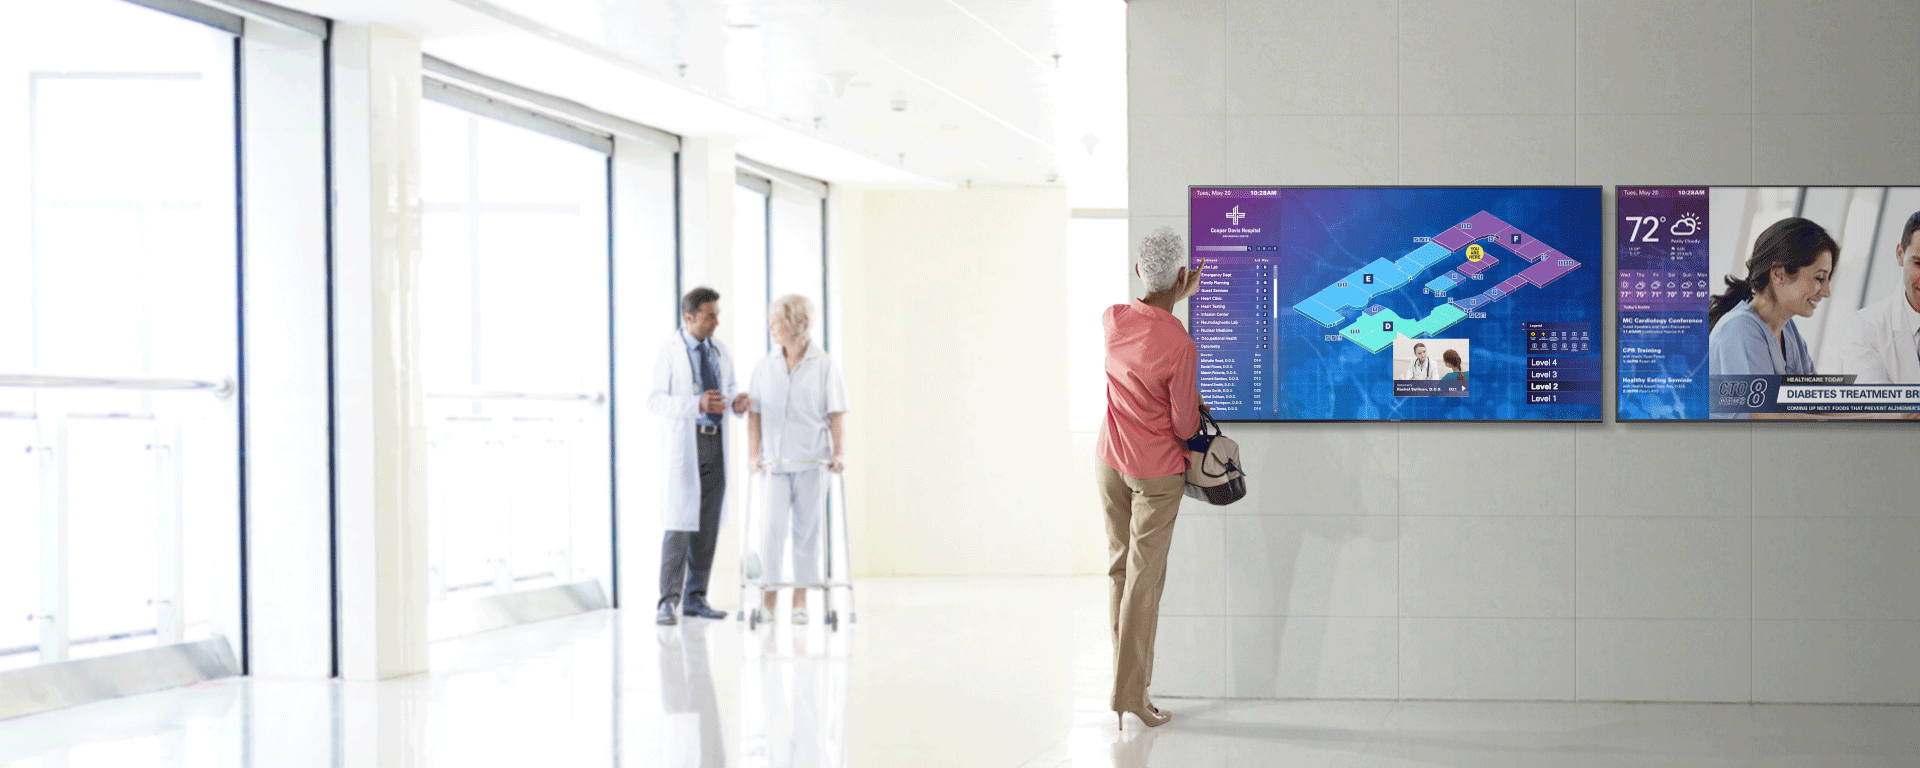 Woman uses digital signage to navigate a hospital.